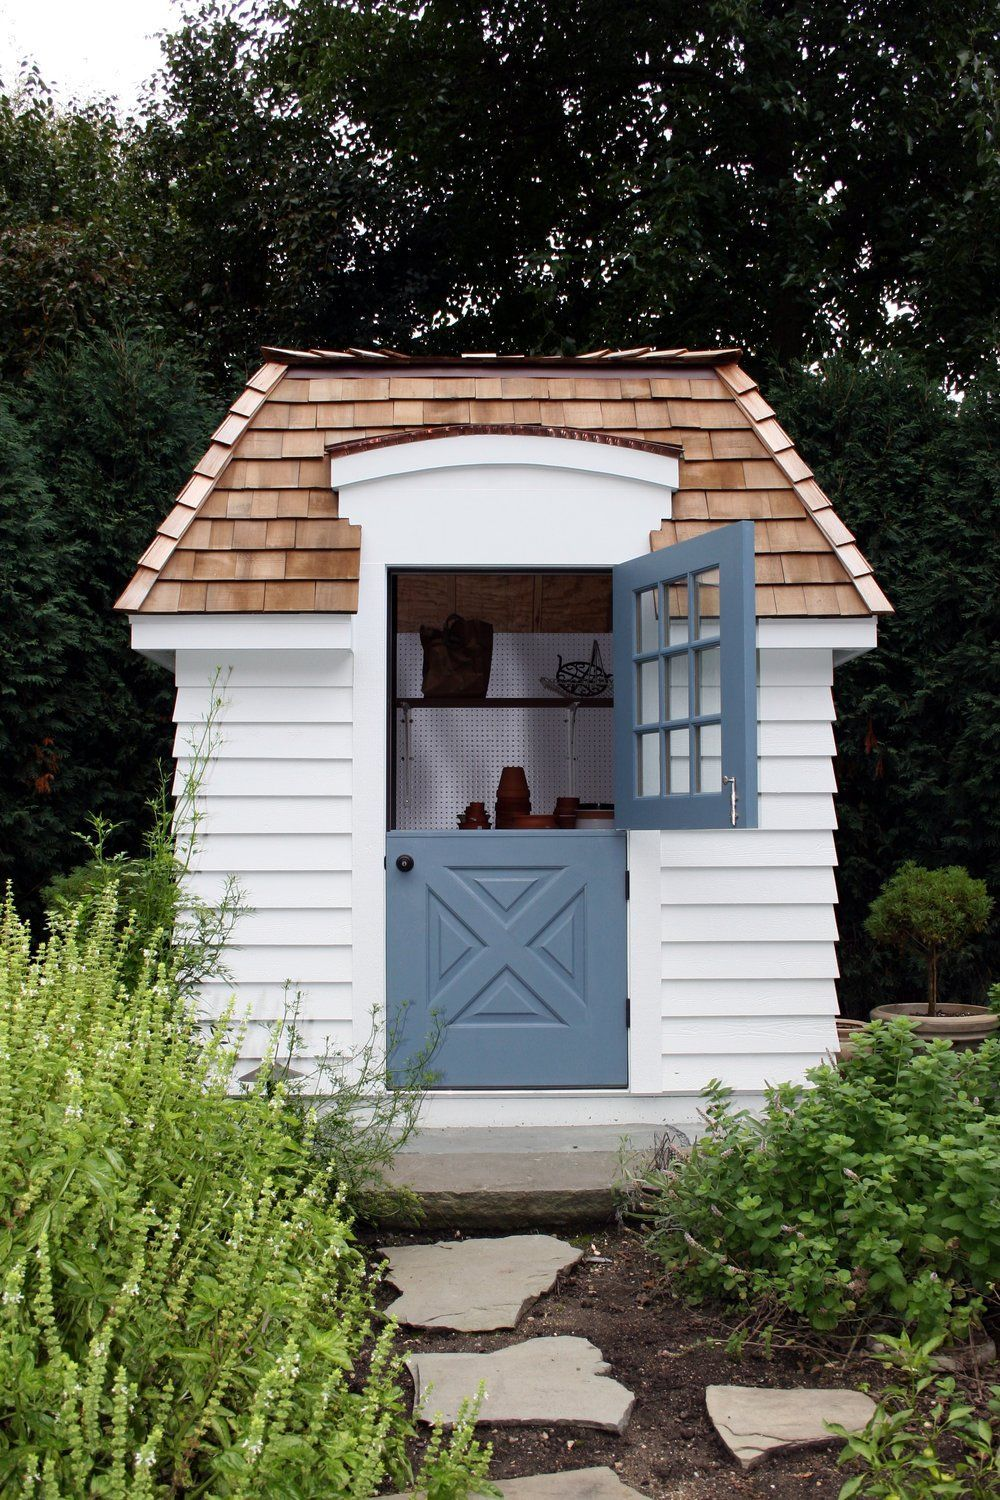 10 Tips For Adding A Dutch Door In Your Home Shed Wood Shed Plans Backyard Shed